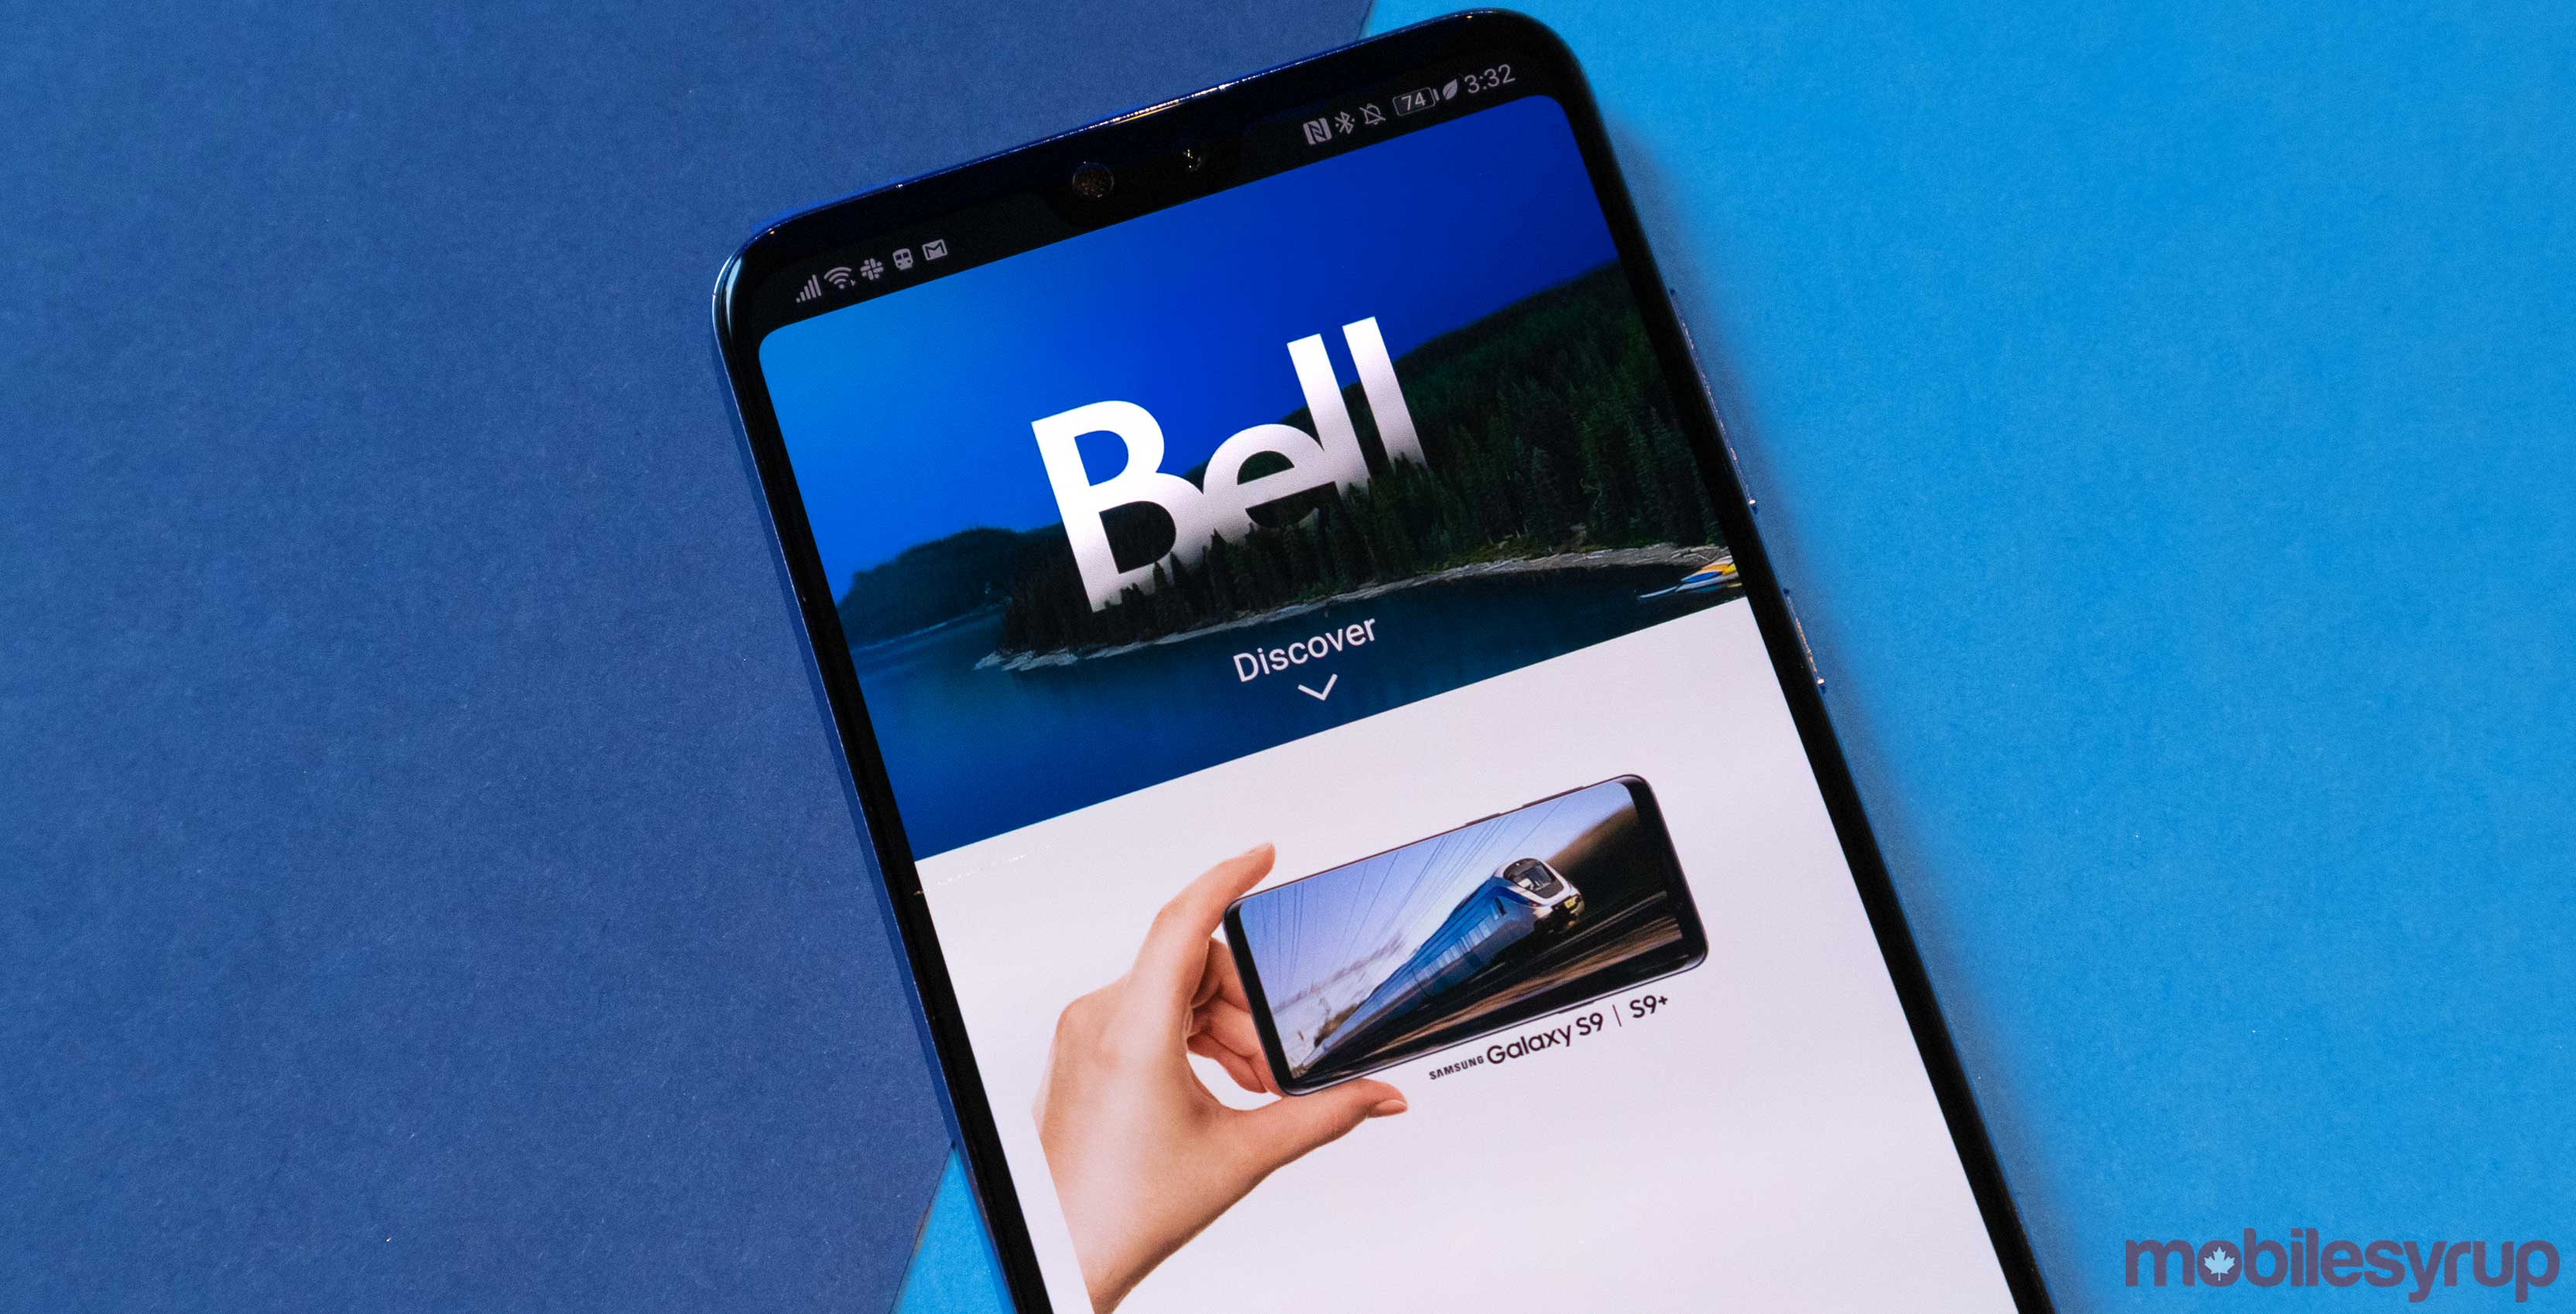 Bell back to school offer includes free Chromecast on top of discounted internet